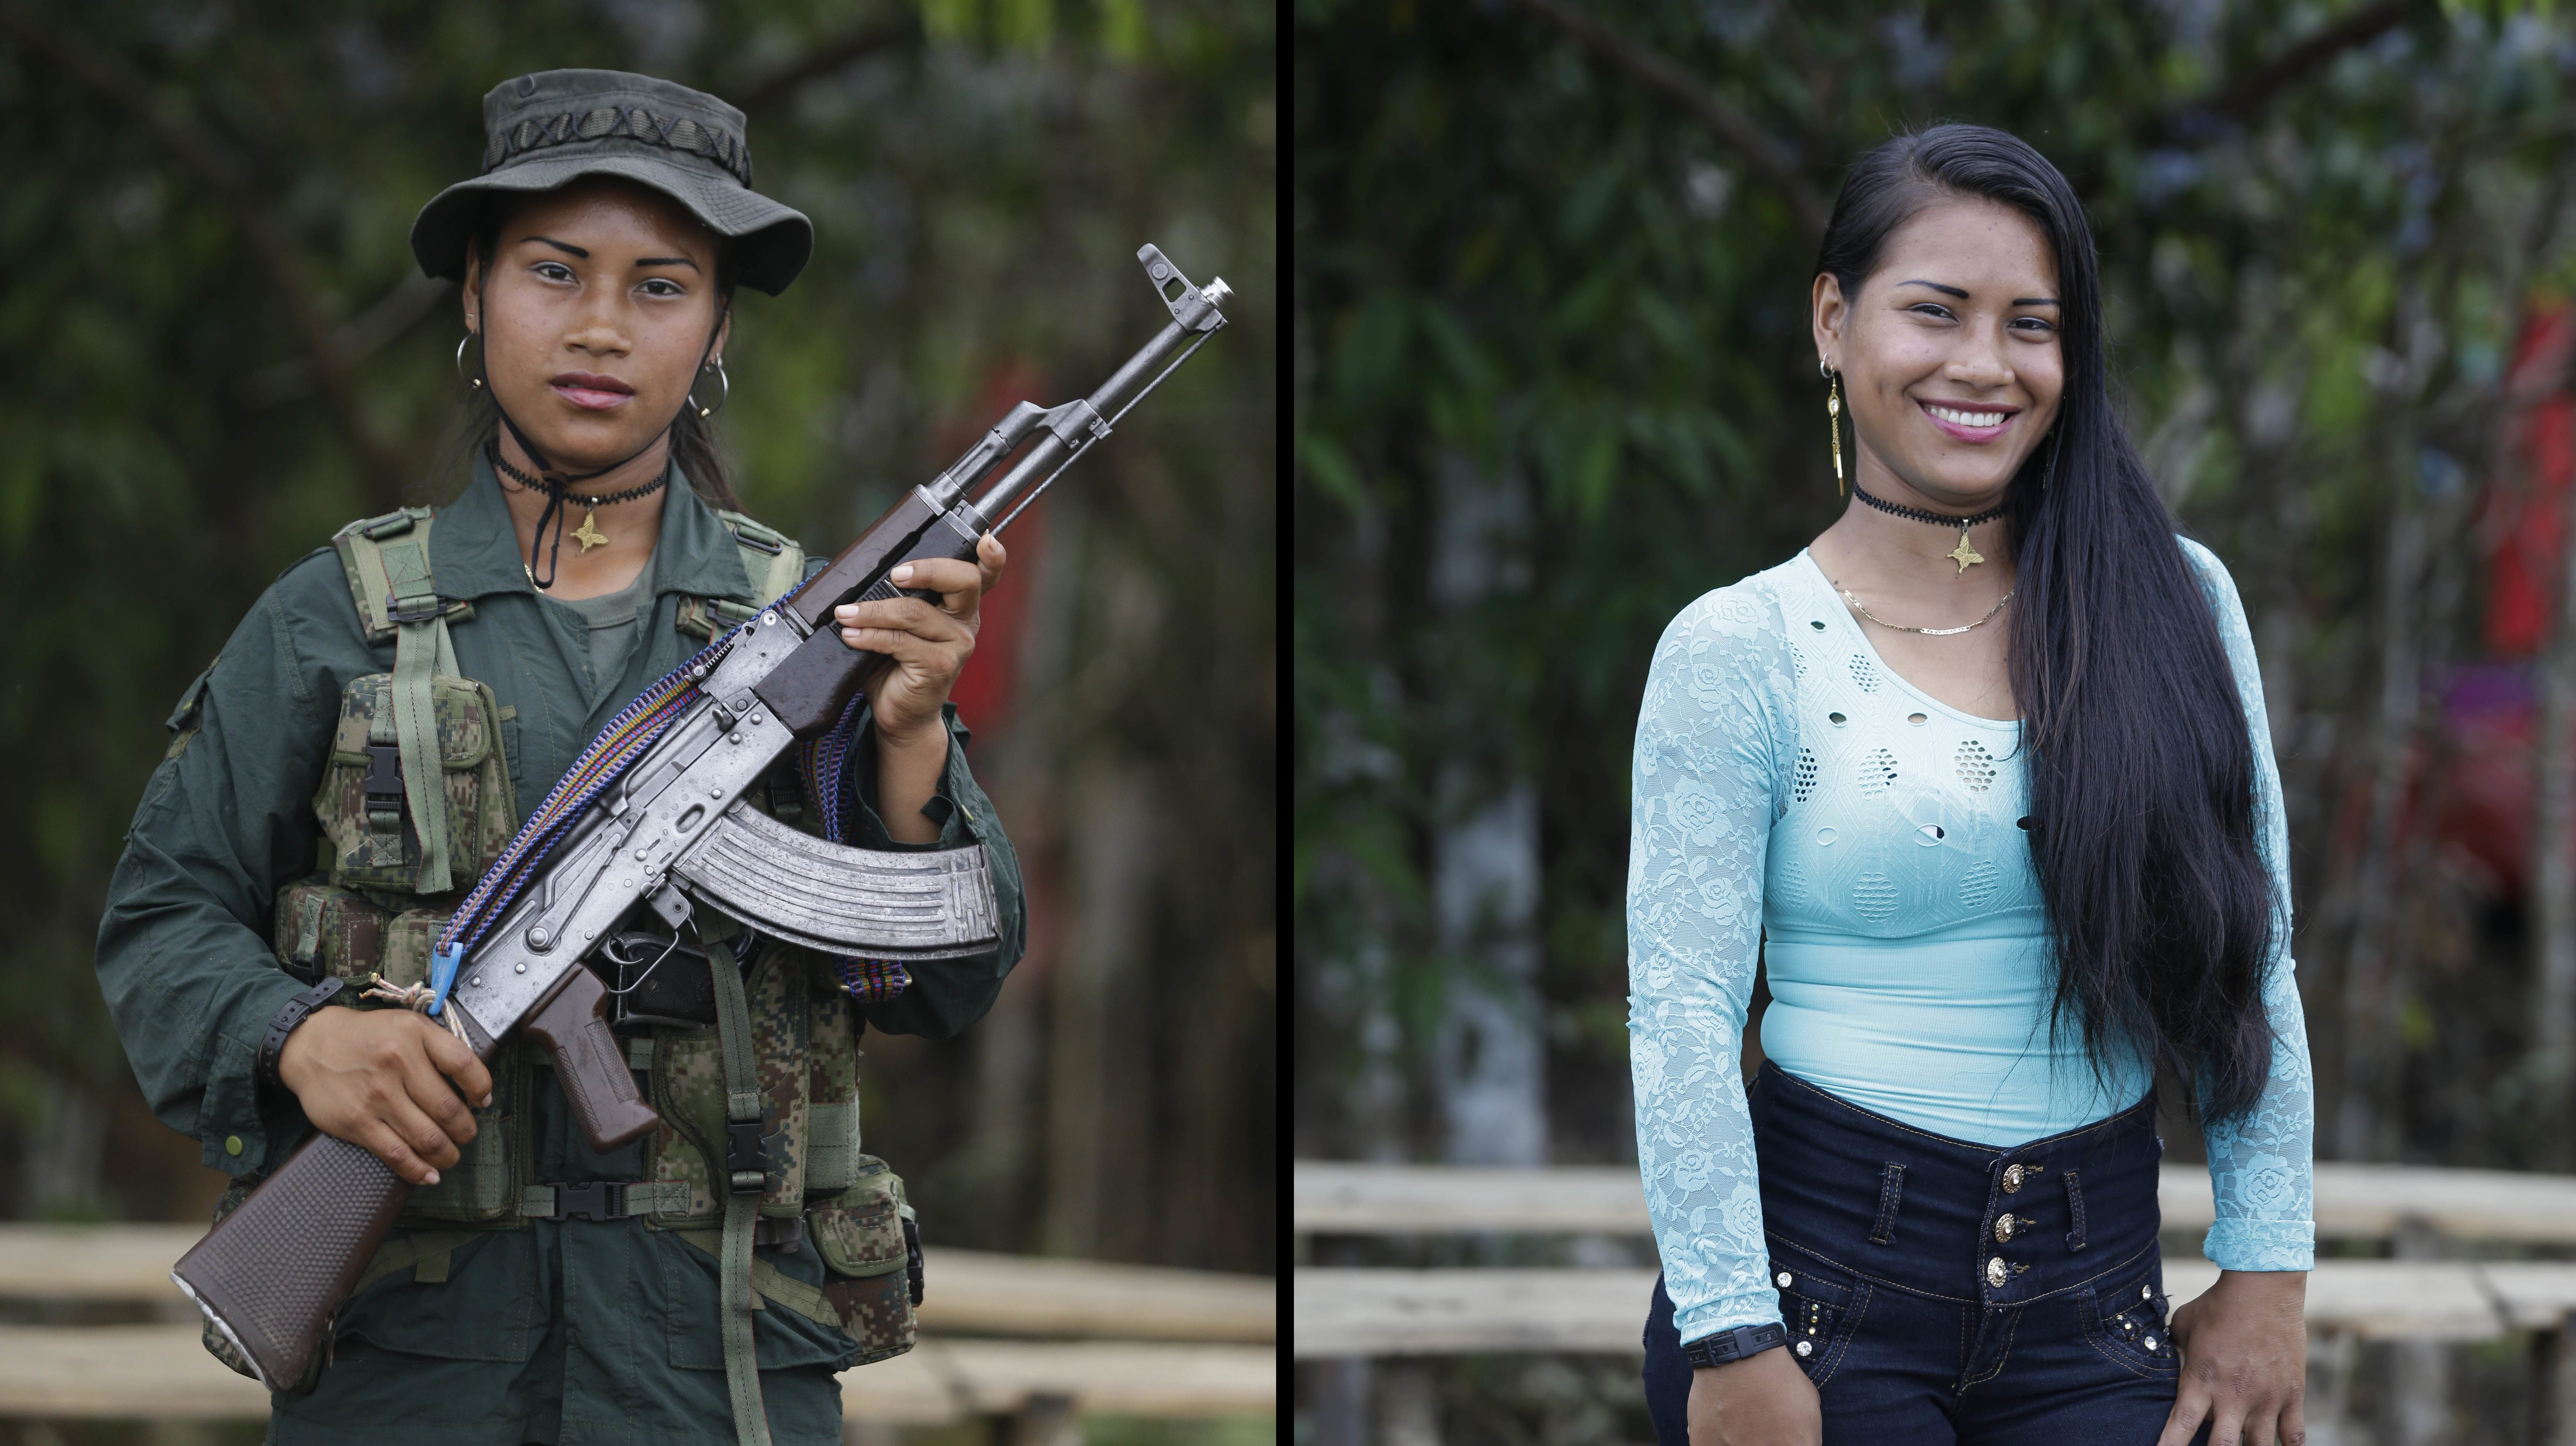 A FARC fighter holding a weapon while in her uniform and in civilian clothing at a guerrilla camp in the southern jungle of Putumayo, Colombia.